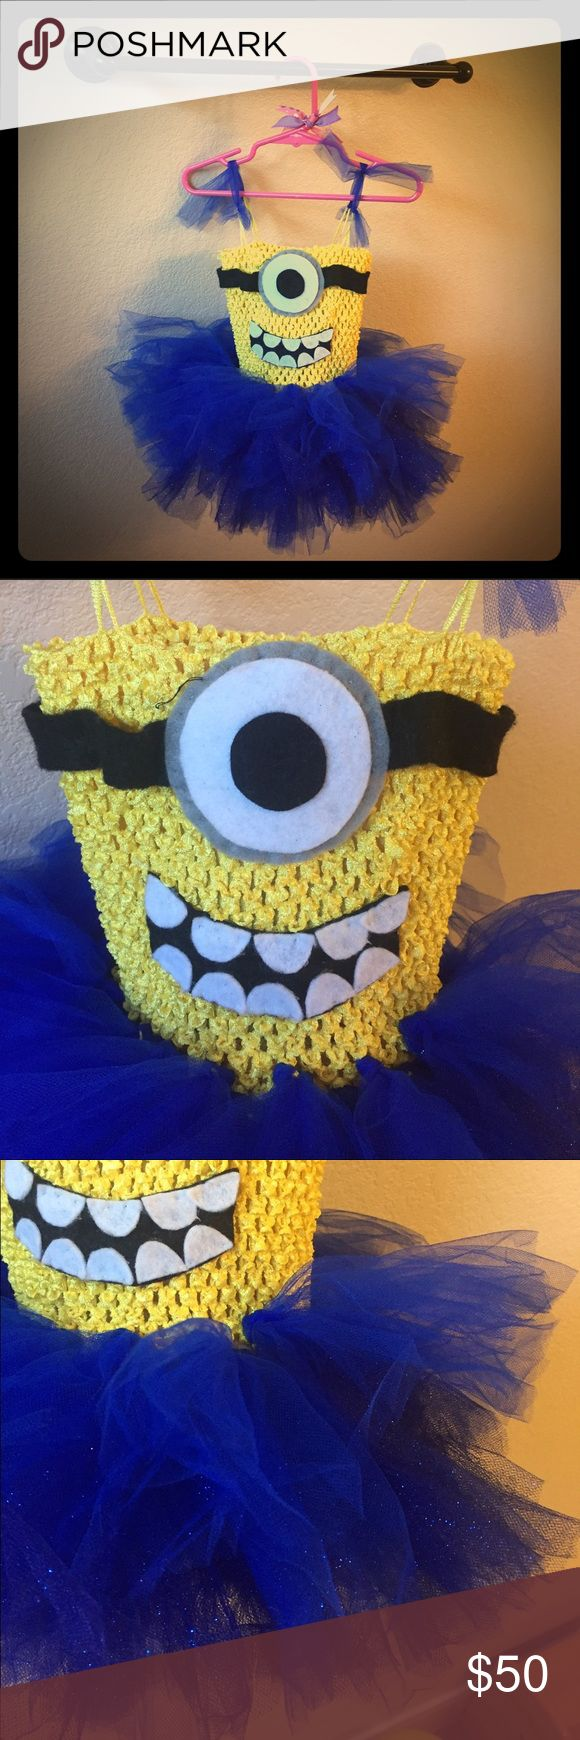 🎃Baby girl's Minions Halloween costume!!🎃 A GREAT find!! This custom made Minion costume is perfect for your little girl who is a huge Minions fan!! My baby girl wanted to be a minion and I couldn't find this in stores, so I made it. Worn w/ white onesie underneath, but it would go great with a yellow one too! There is glitter tulle in the tutu for a little pizazz! We got sooo many compliments!! She was 22 months when she wore this so I guesstimate this would fit 18-24 months. It took a…